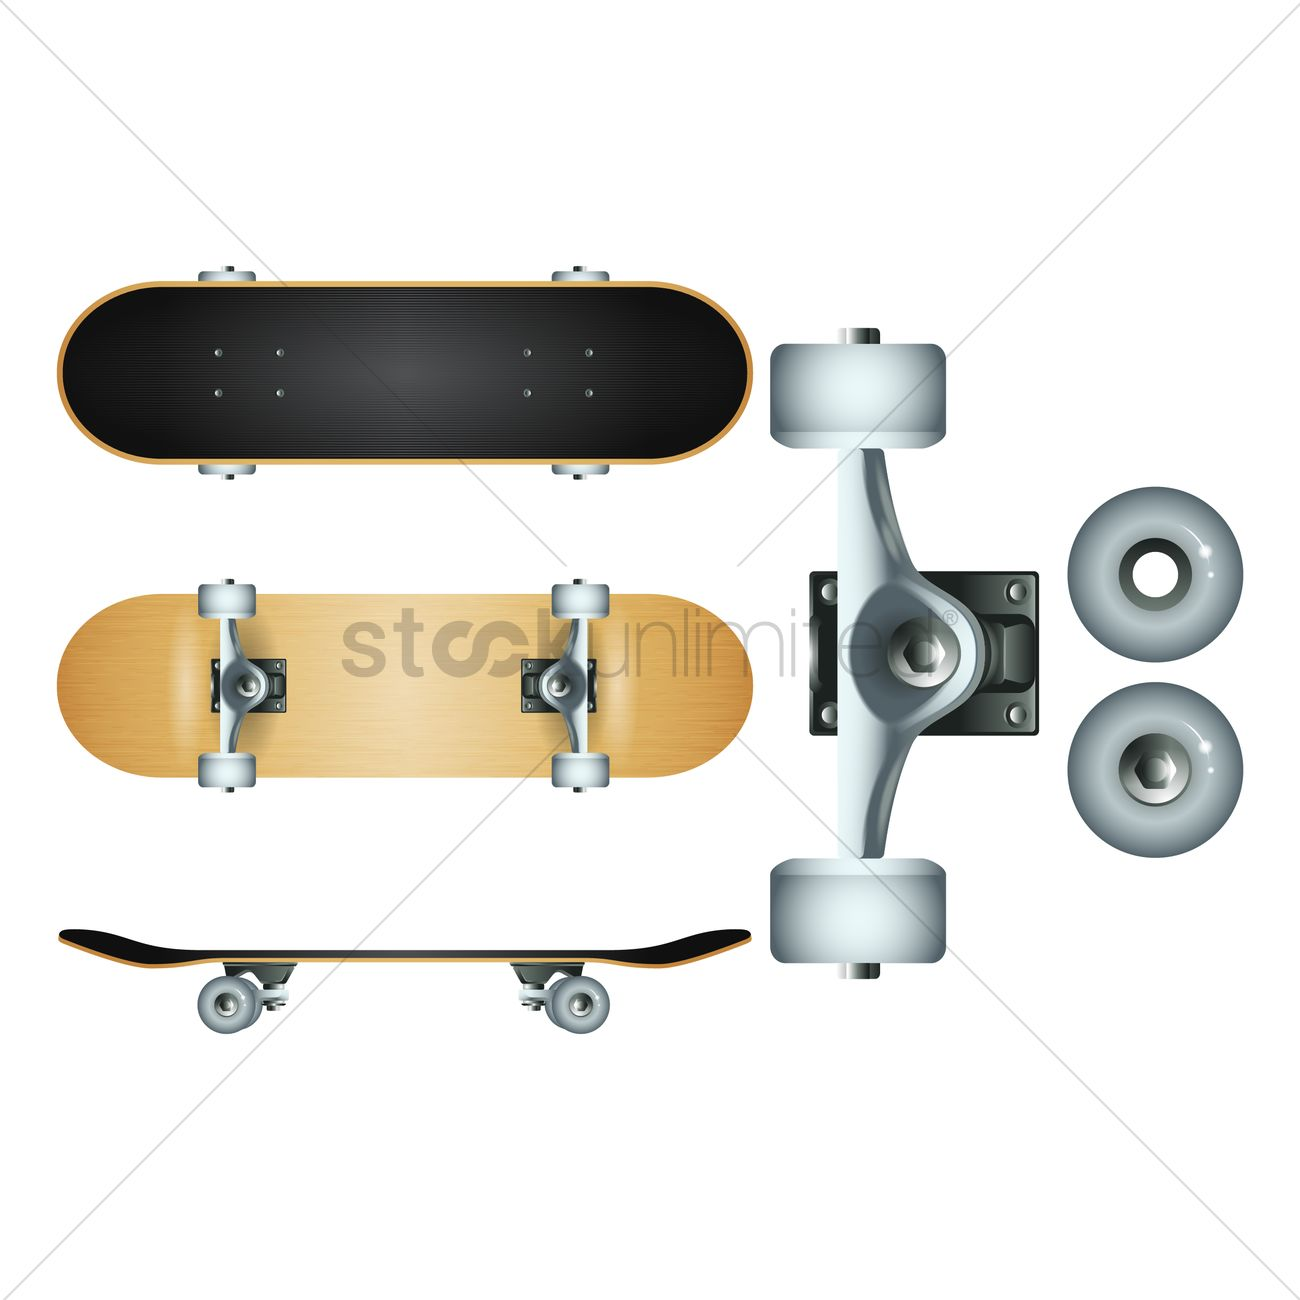 82bb0cd8 Skateboard and wheels set Vector Image - 1806632 | StockUnlimited